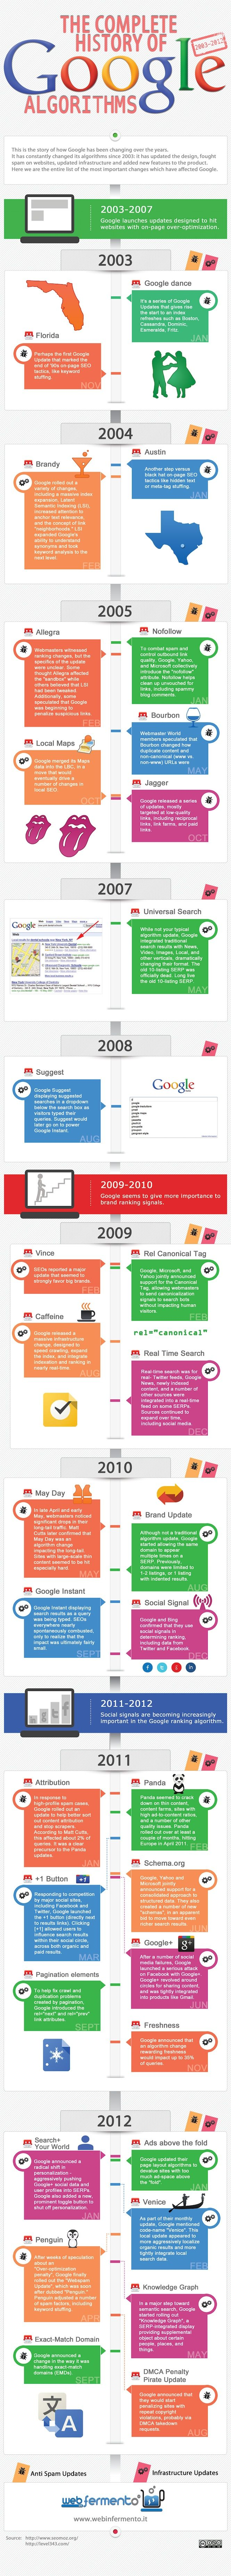 #INFOGRAPHIC: The Complete History of #Google Algorithms ~ Sociable360.com | Social Media, Blogging, SEO and Marketing Resources. @Webinfermento